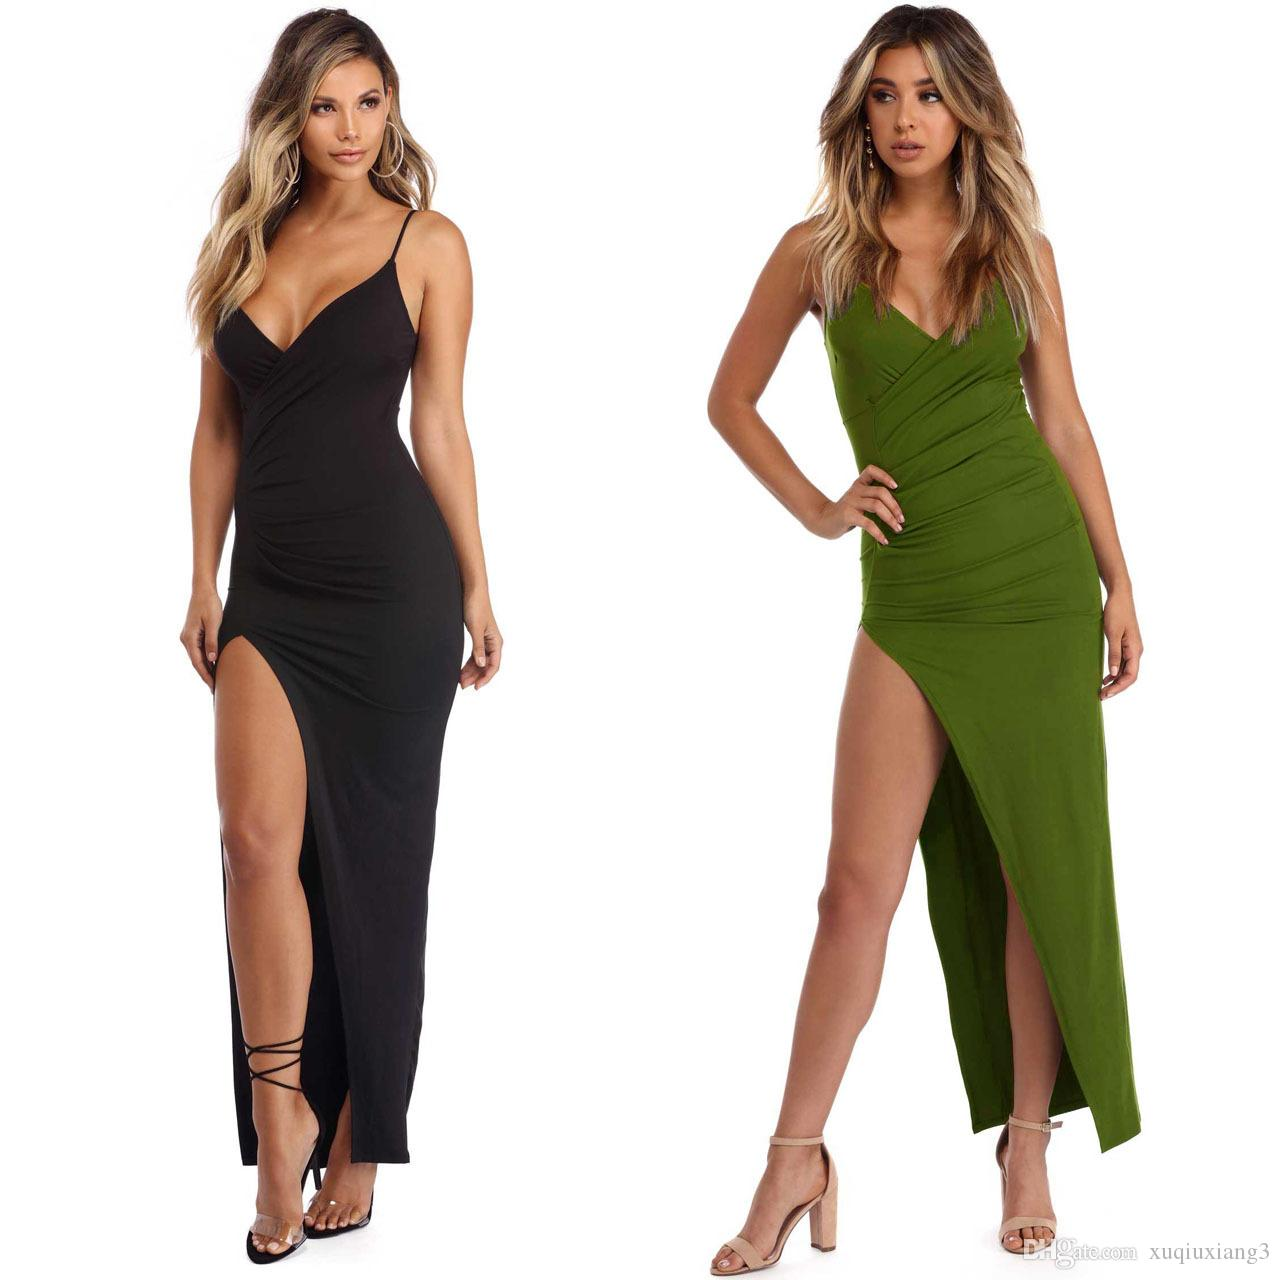 292ad81d7ef Maxi Party Dress Women Pink Plunge Neck Sexy Cross Back Wrap High Slit  Summer Dresses Elegant Club Long Cami Dress Womens Sundresses On Sale Party  And ...